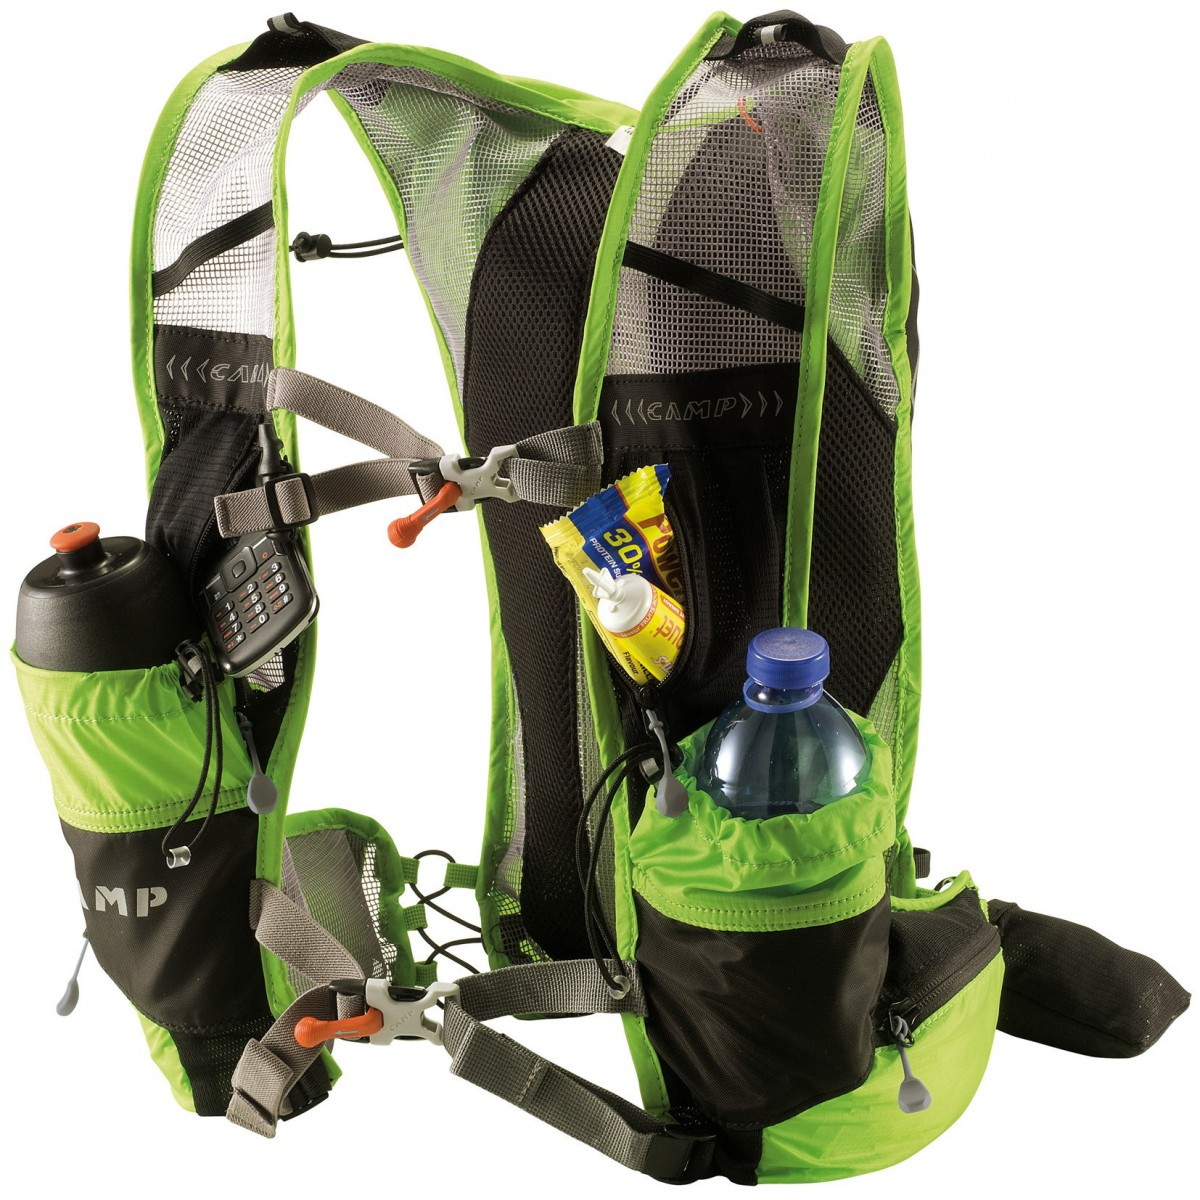 Running Inuka Camp Light De Sac À Equipement Vest Trail Dos xPTUB